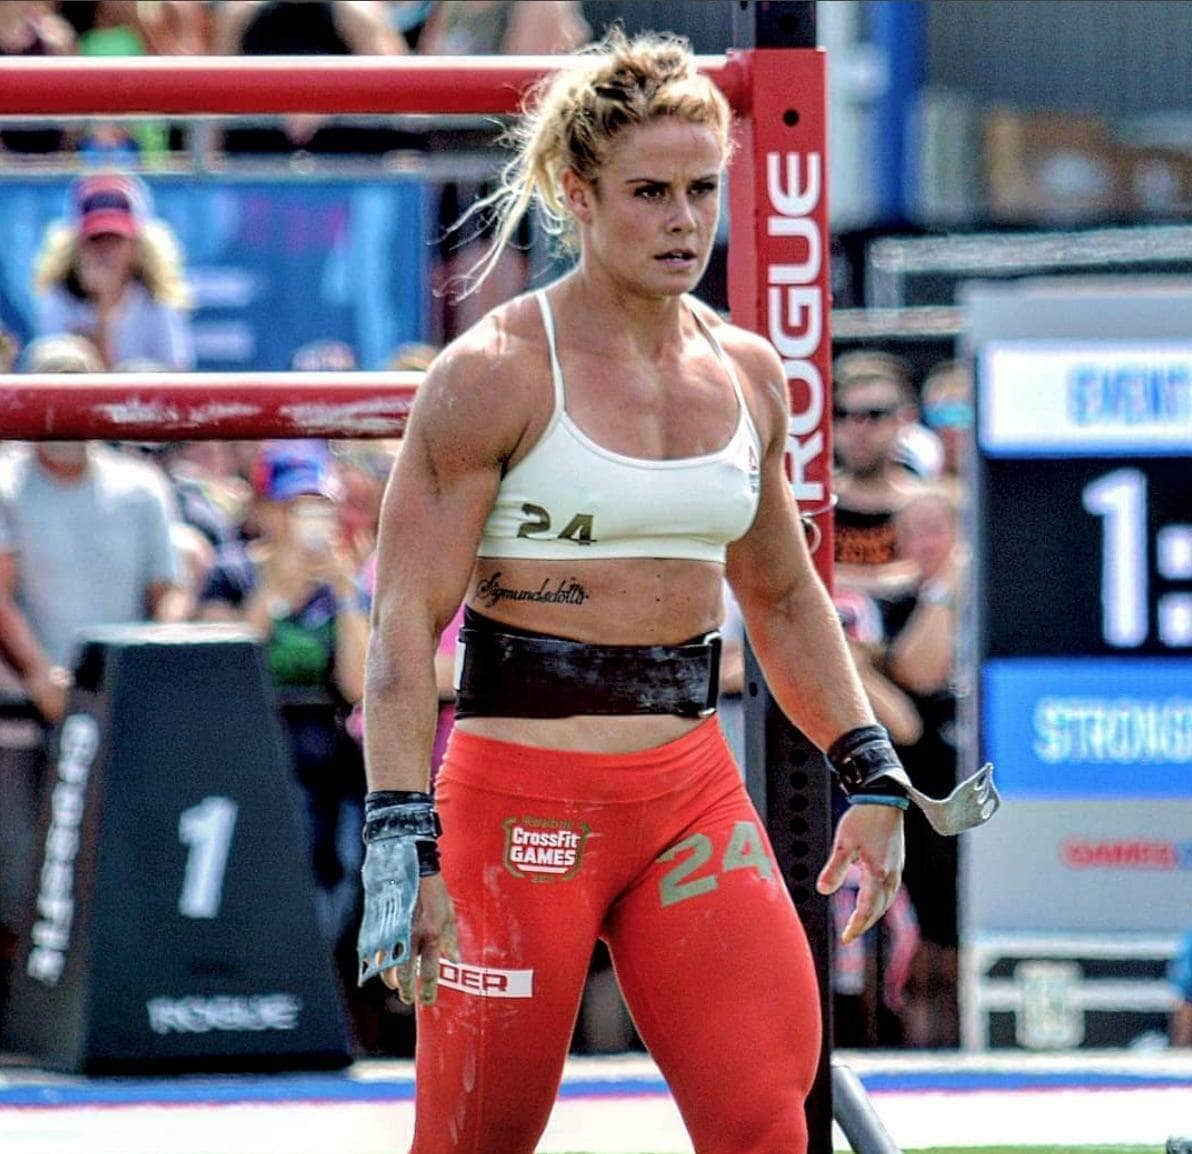 CrossFit Open 20.4 Review: Theofanidis & Sigmundsdottir One Week From Title